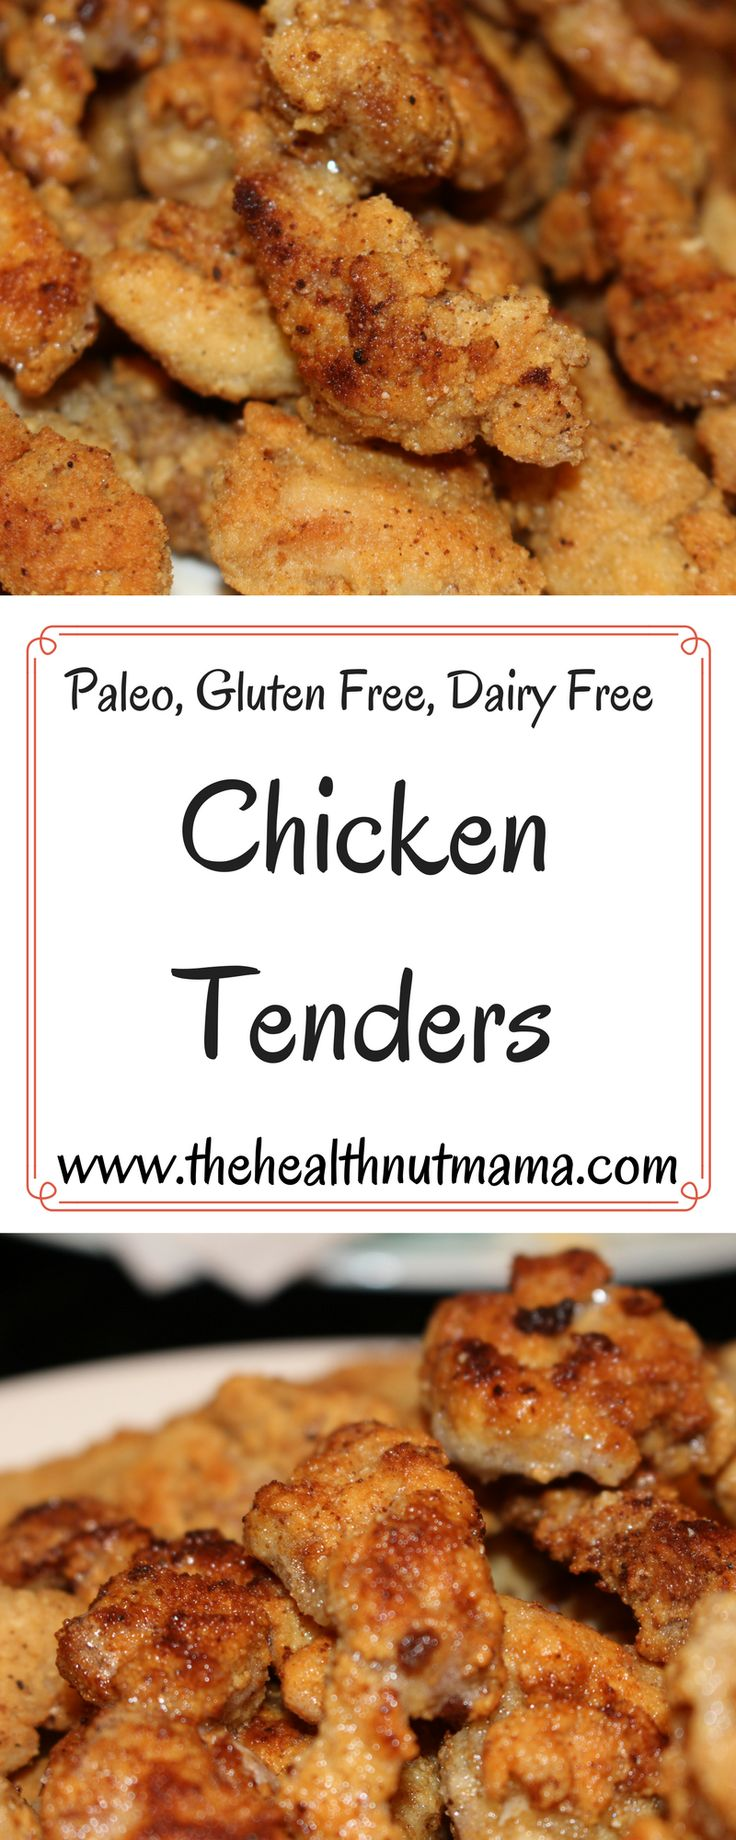 Paleo Chicken Tenders - So delicious & healthy! You'll never want to feed your kids the nasty fast food nuggets again! #paleo #paleorecipes #paleochickentenders #chickentenders #healthyrecipes #glutenfree #dairyfree #grainfree #chickenfree www.thehealthnutmama.com